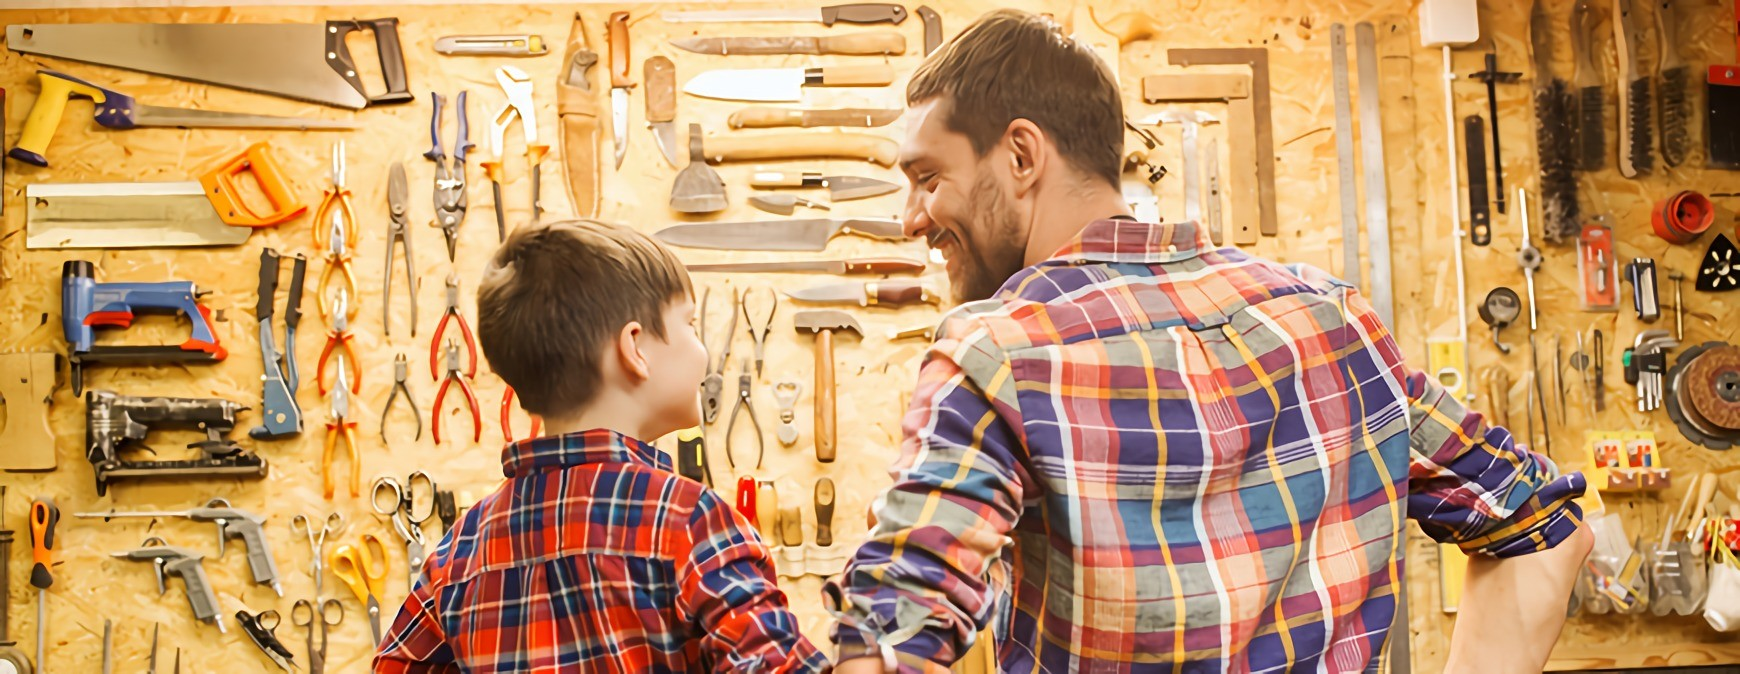 dad and son in workshop